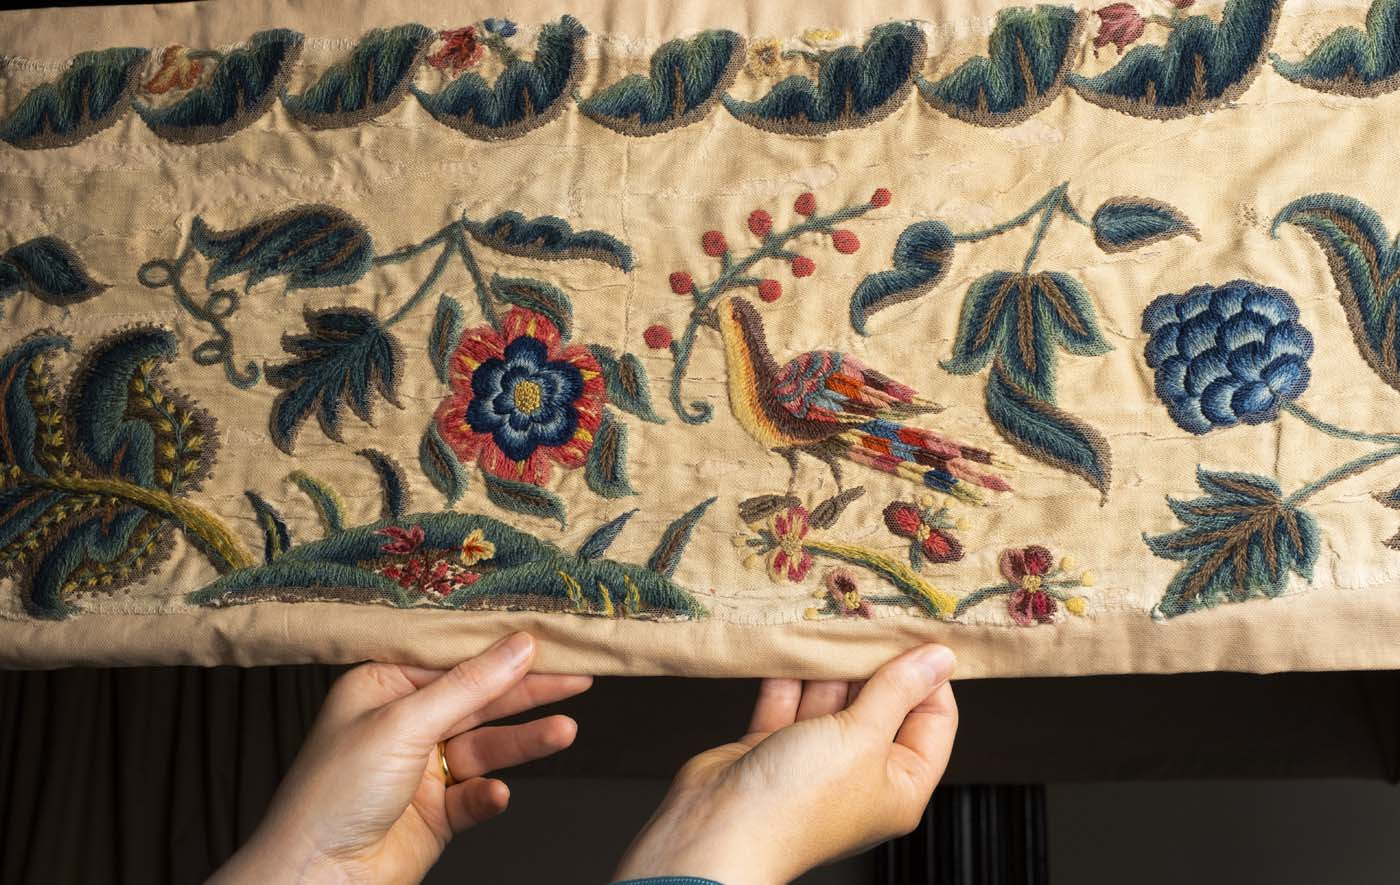 detail of an embroidered piece of cloth with bird and flower designs